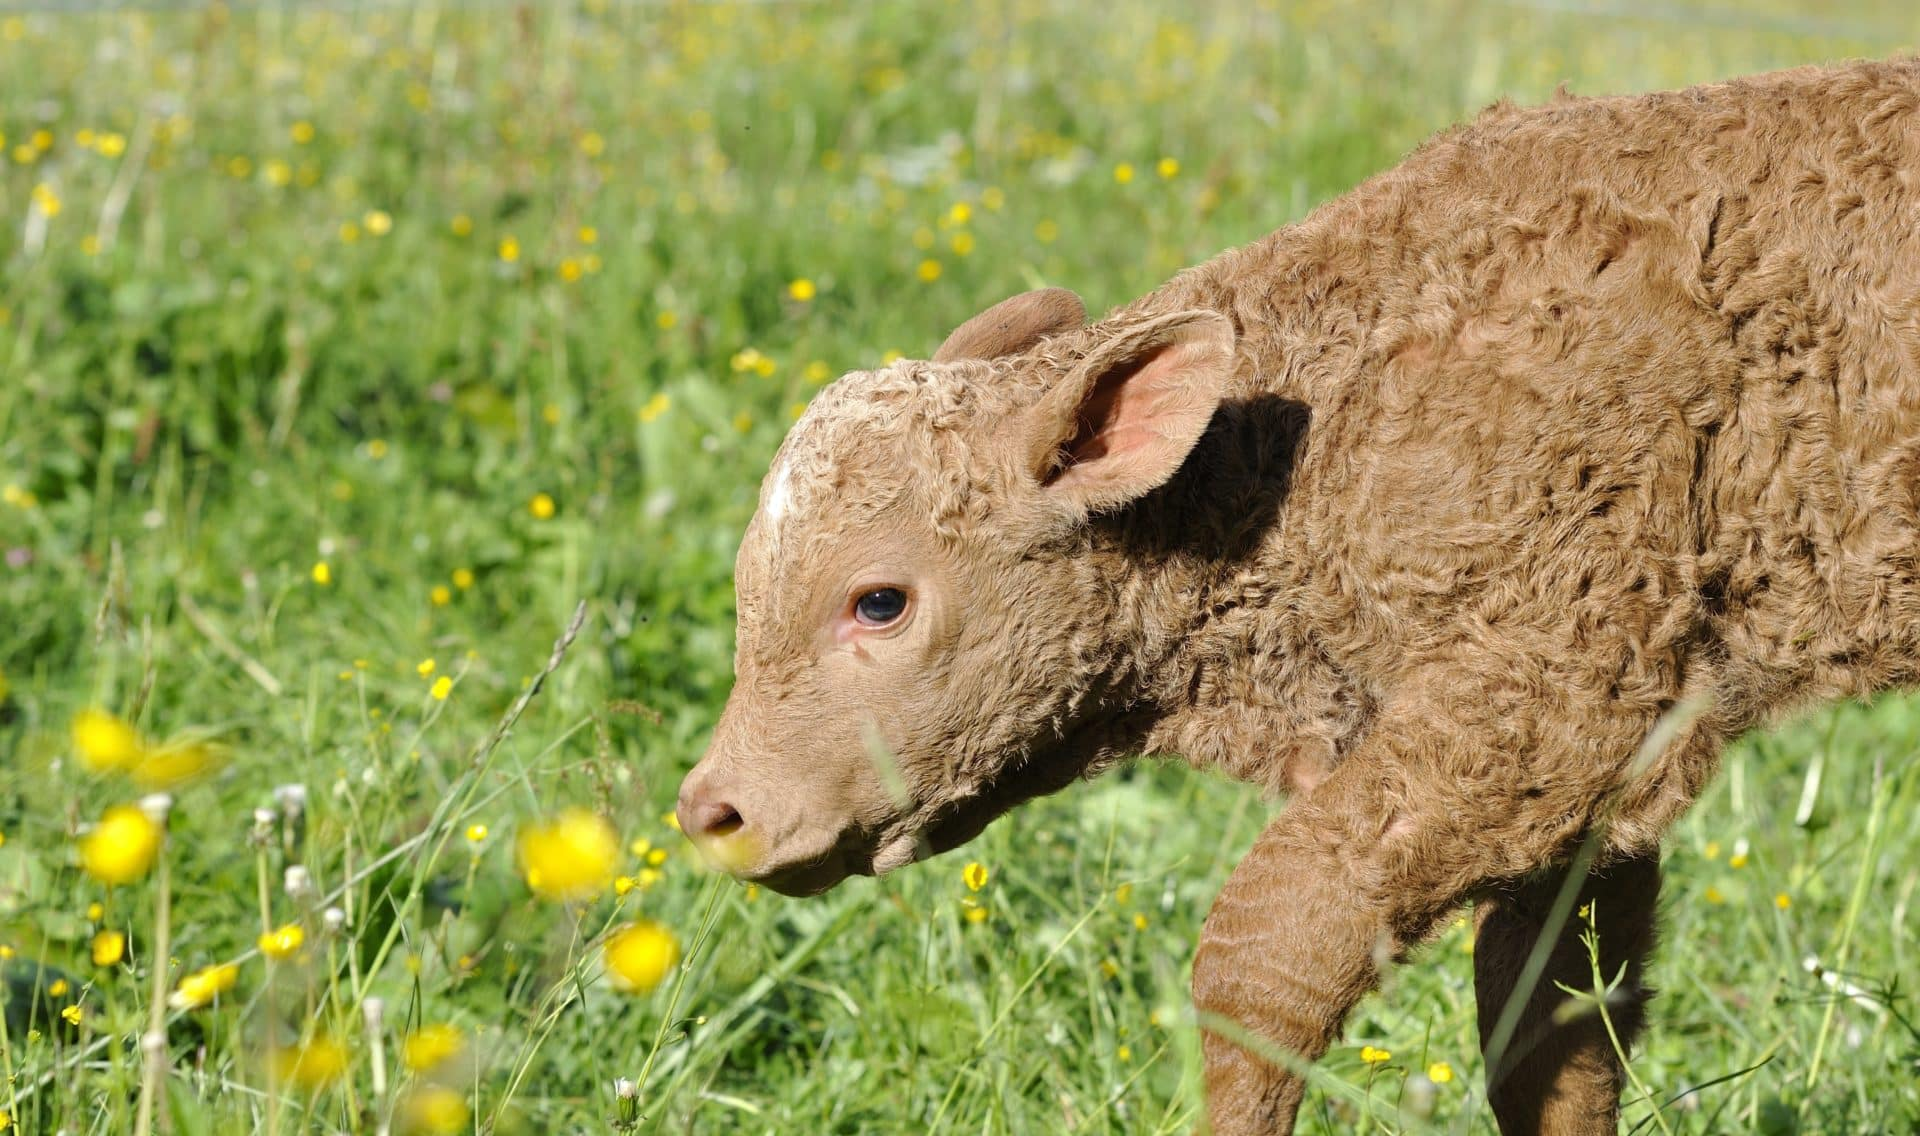 No more antibiotics for healthy animals? calf cows livestock health amr antimicrobial resistance